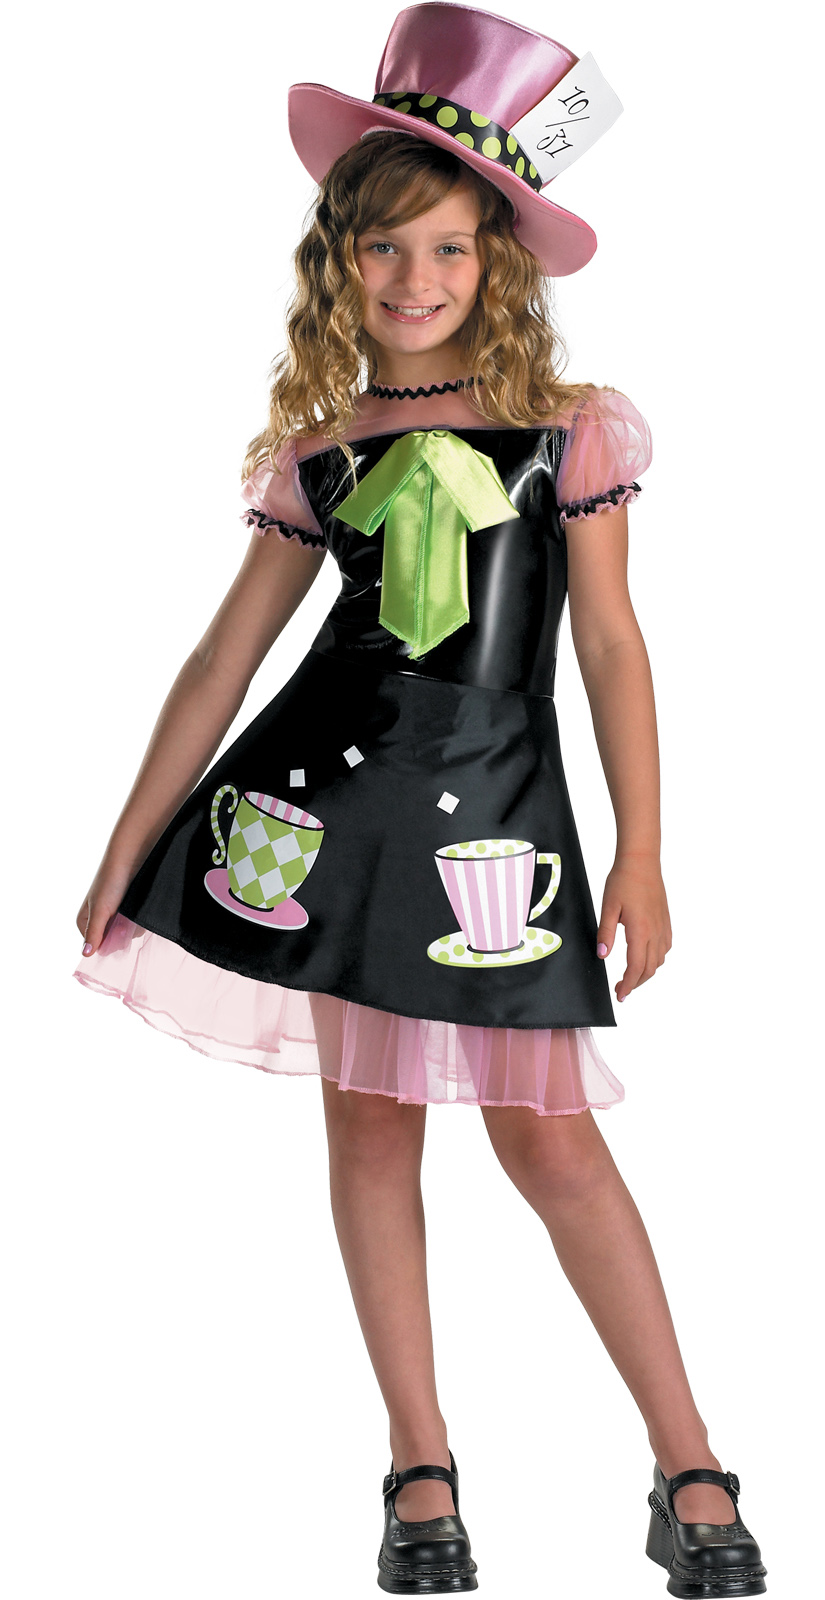 alice in wonderland clothing australia